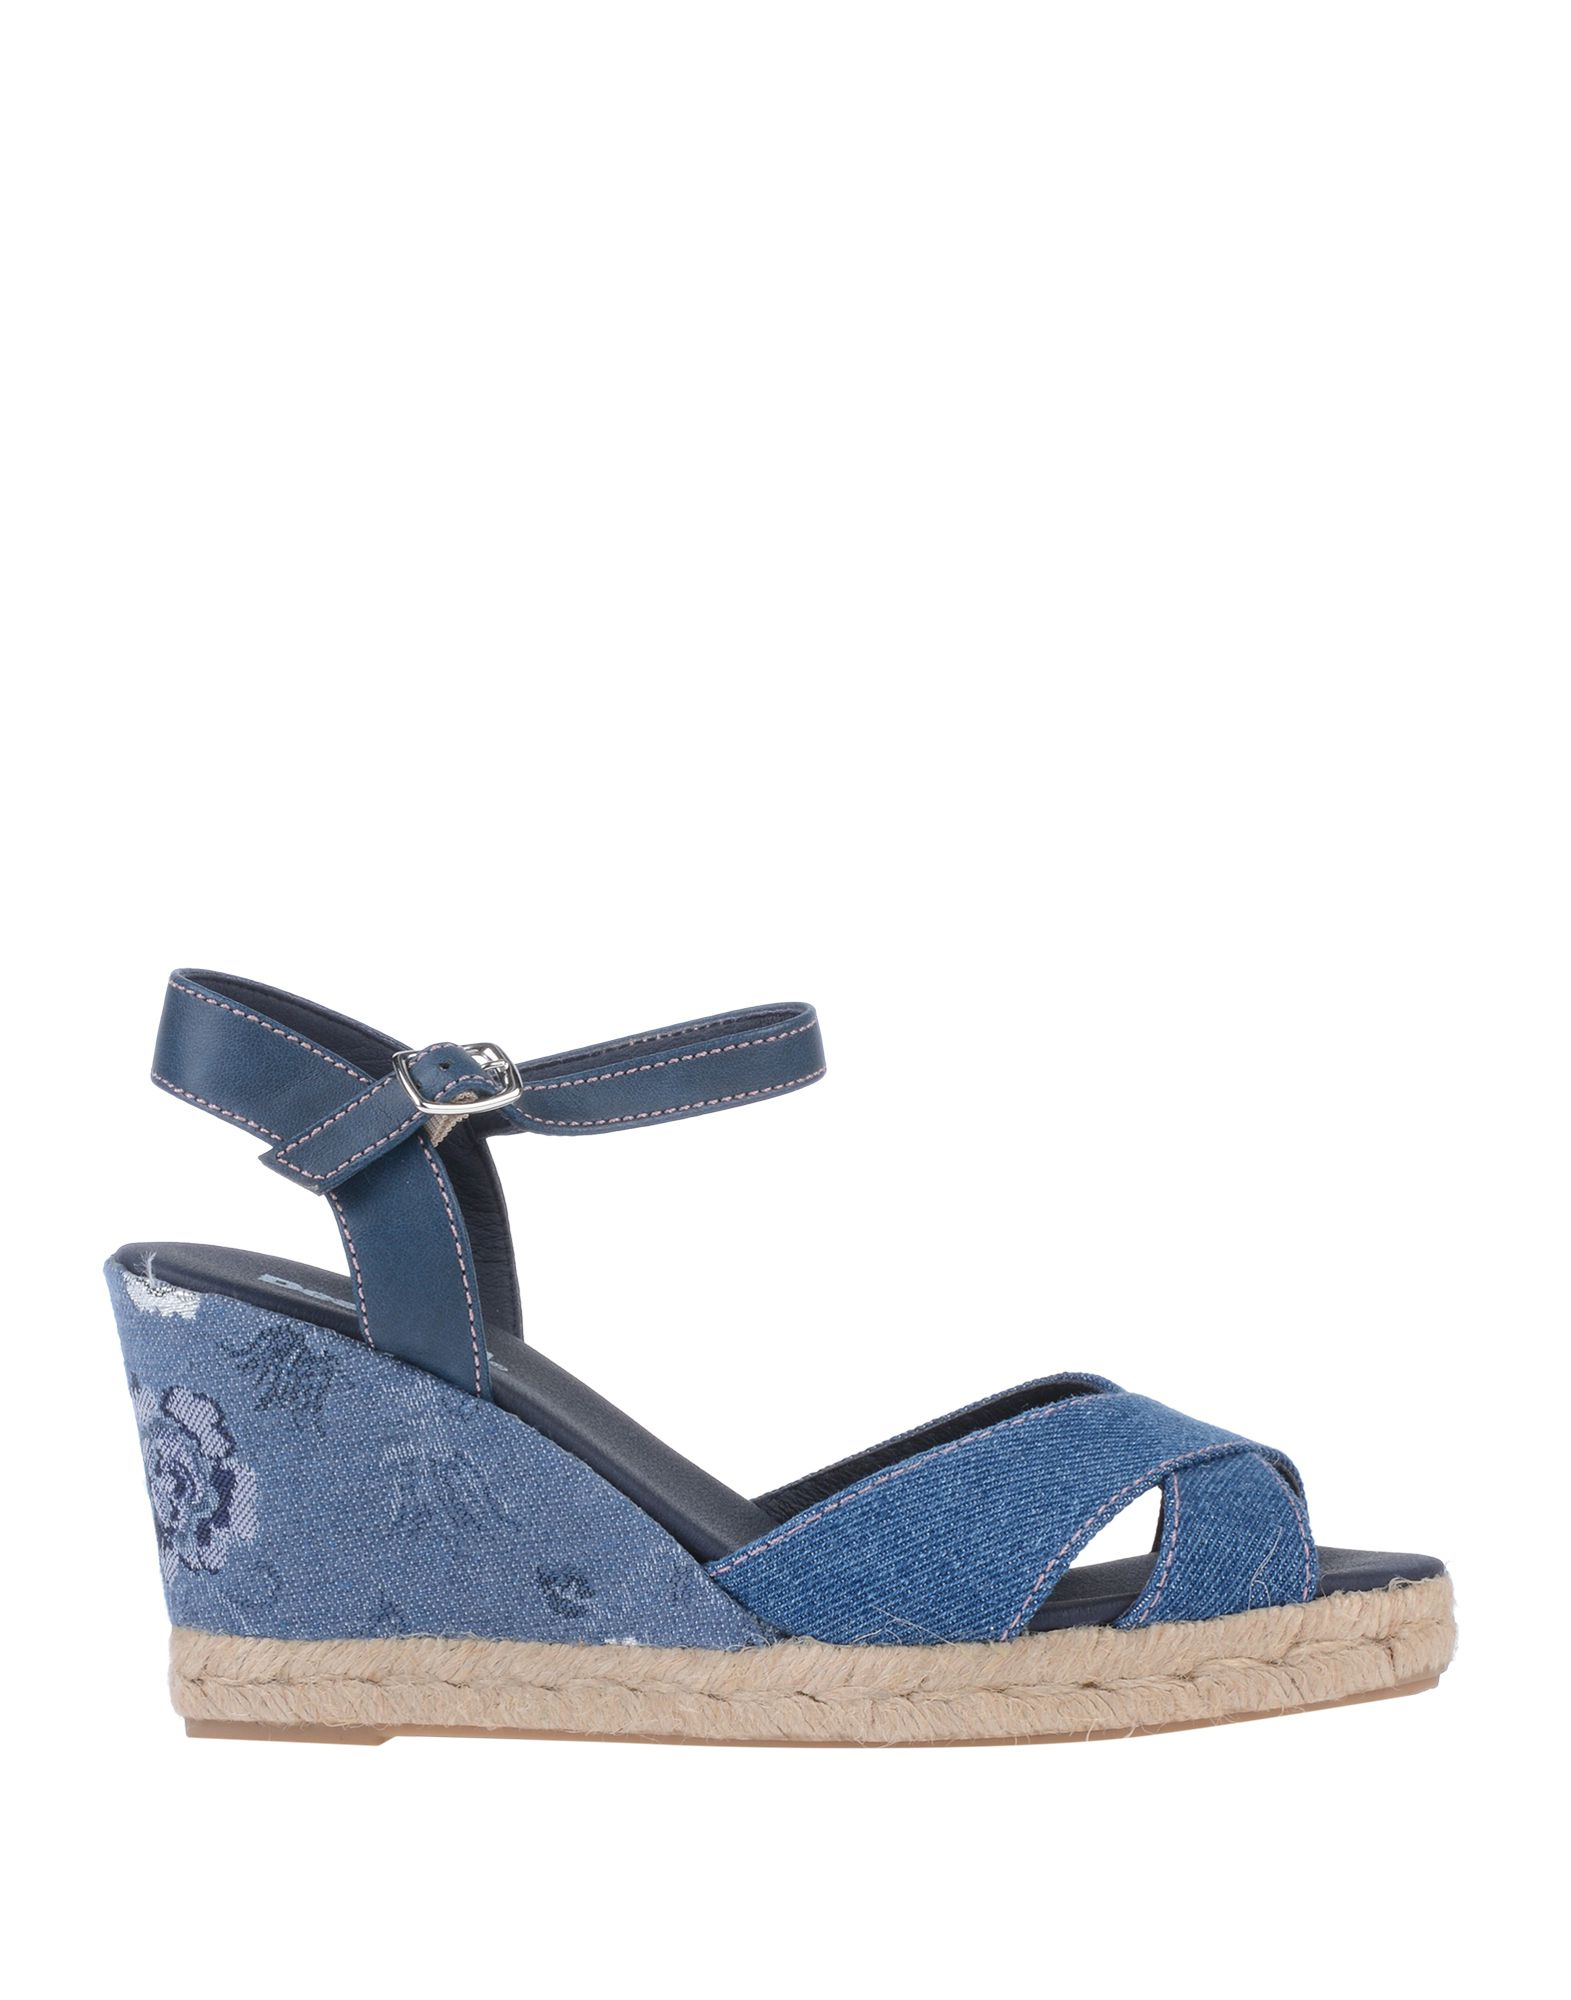 Desigual Sandals - Women  Desigual Sandals online on  Women Australia - 11506617MM 10e871